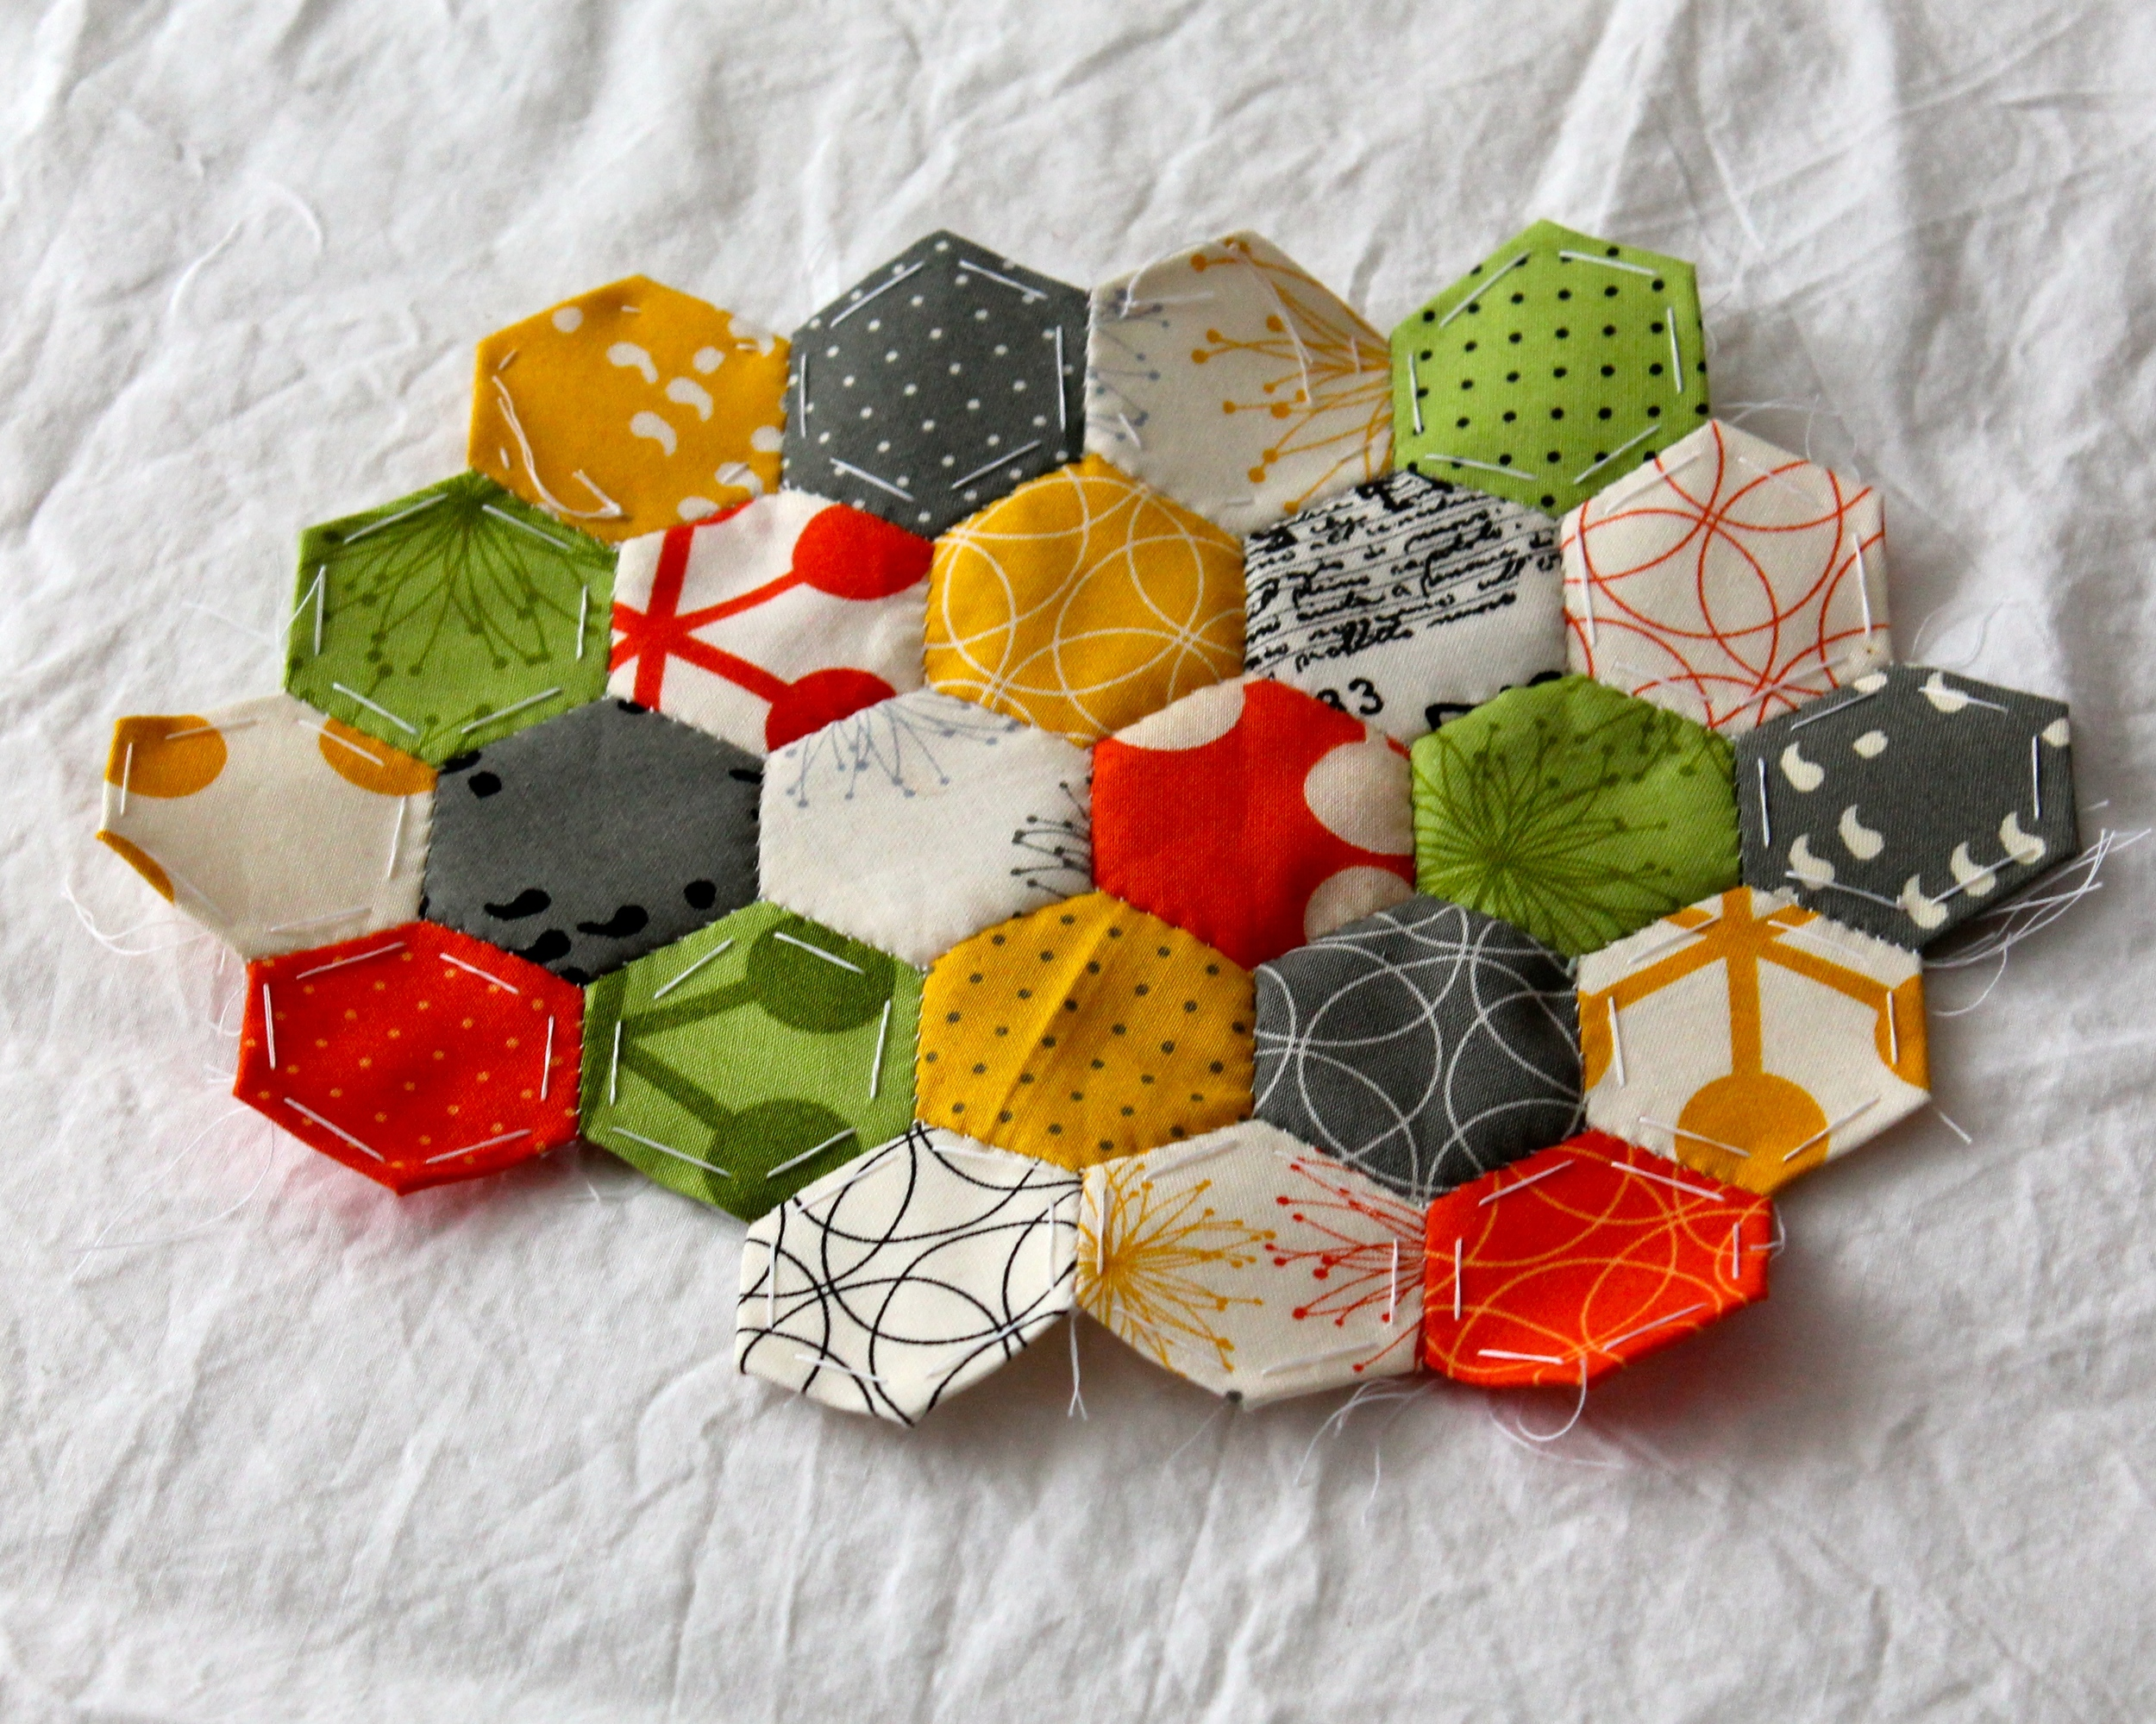 paper pieced hexagons in yellow, green, gray, white, and orange fabric